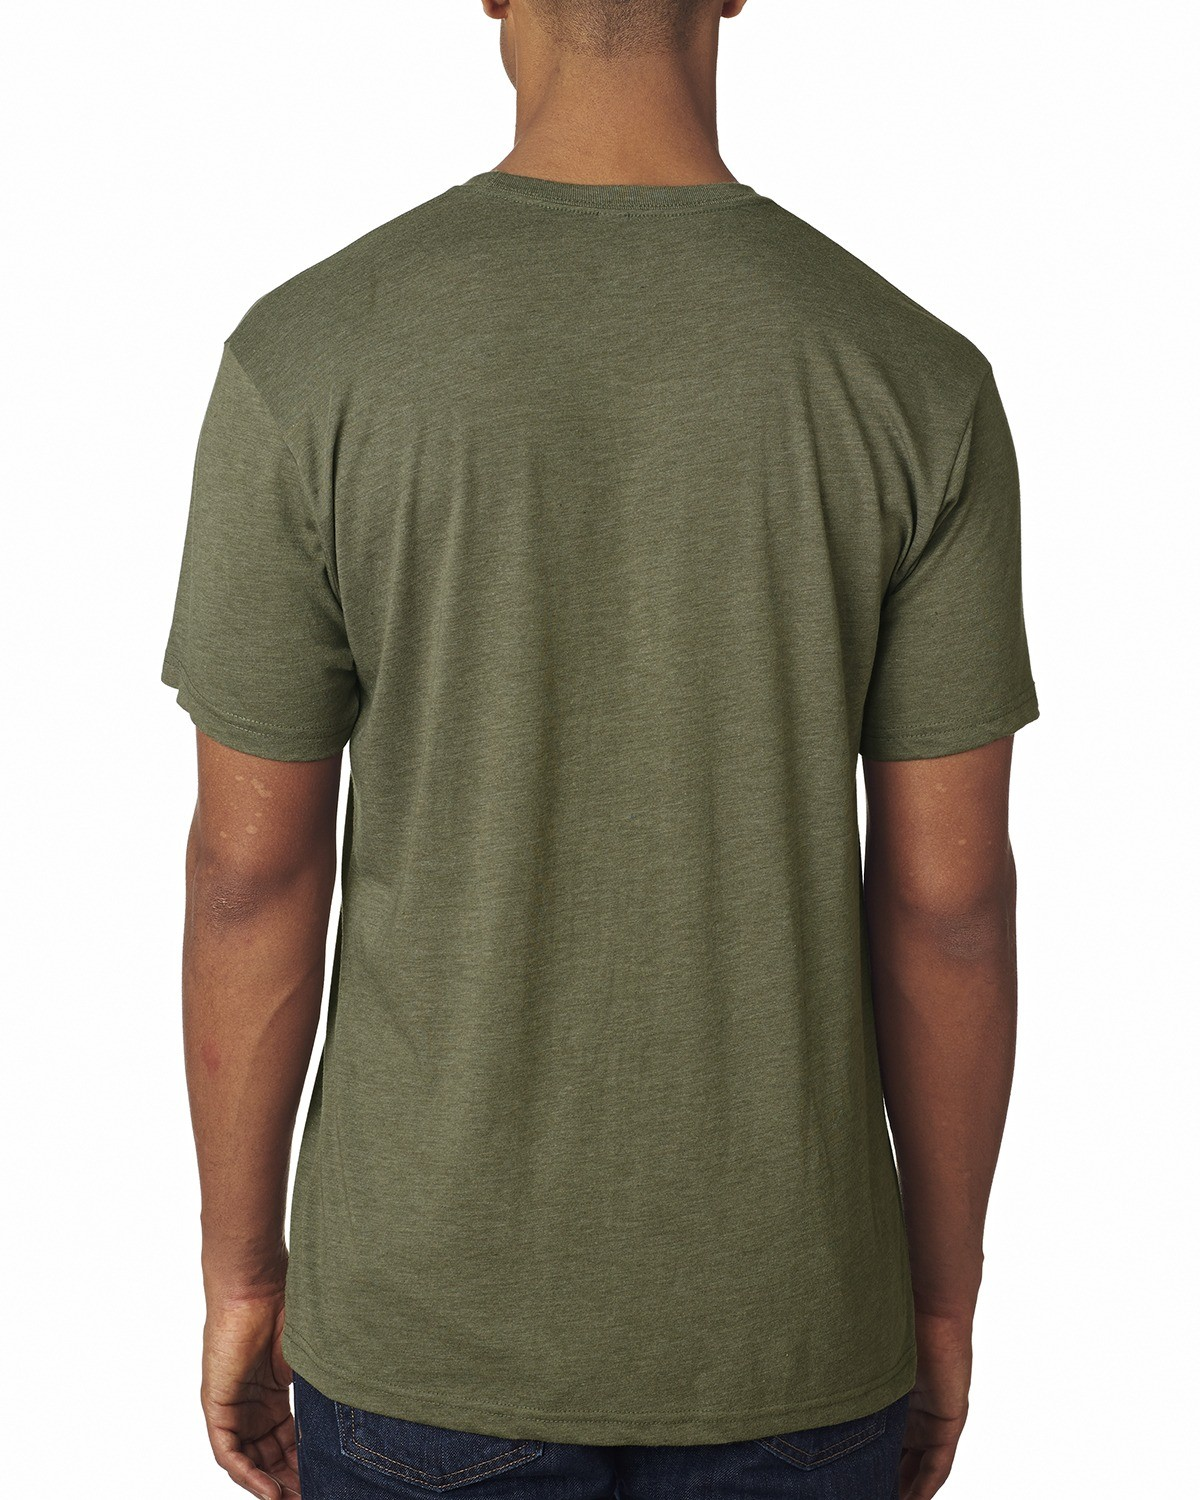 6010 Next Level MILITARY GREEN